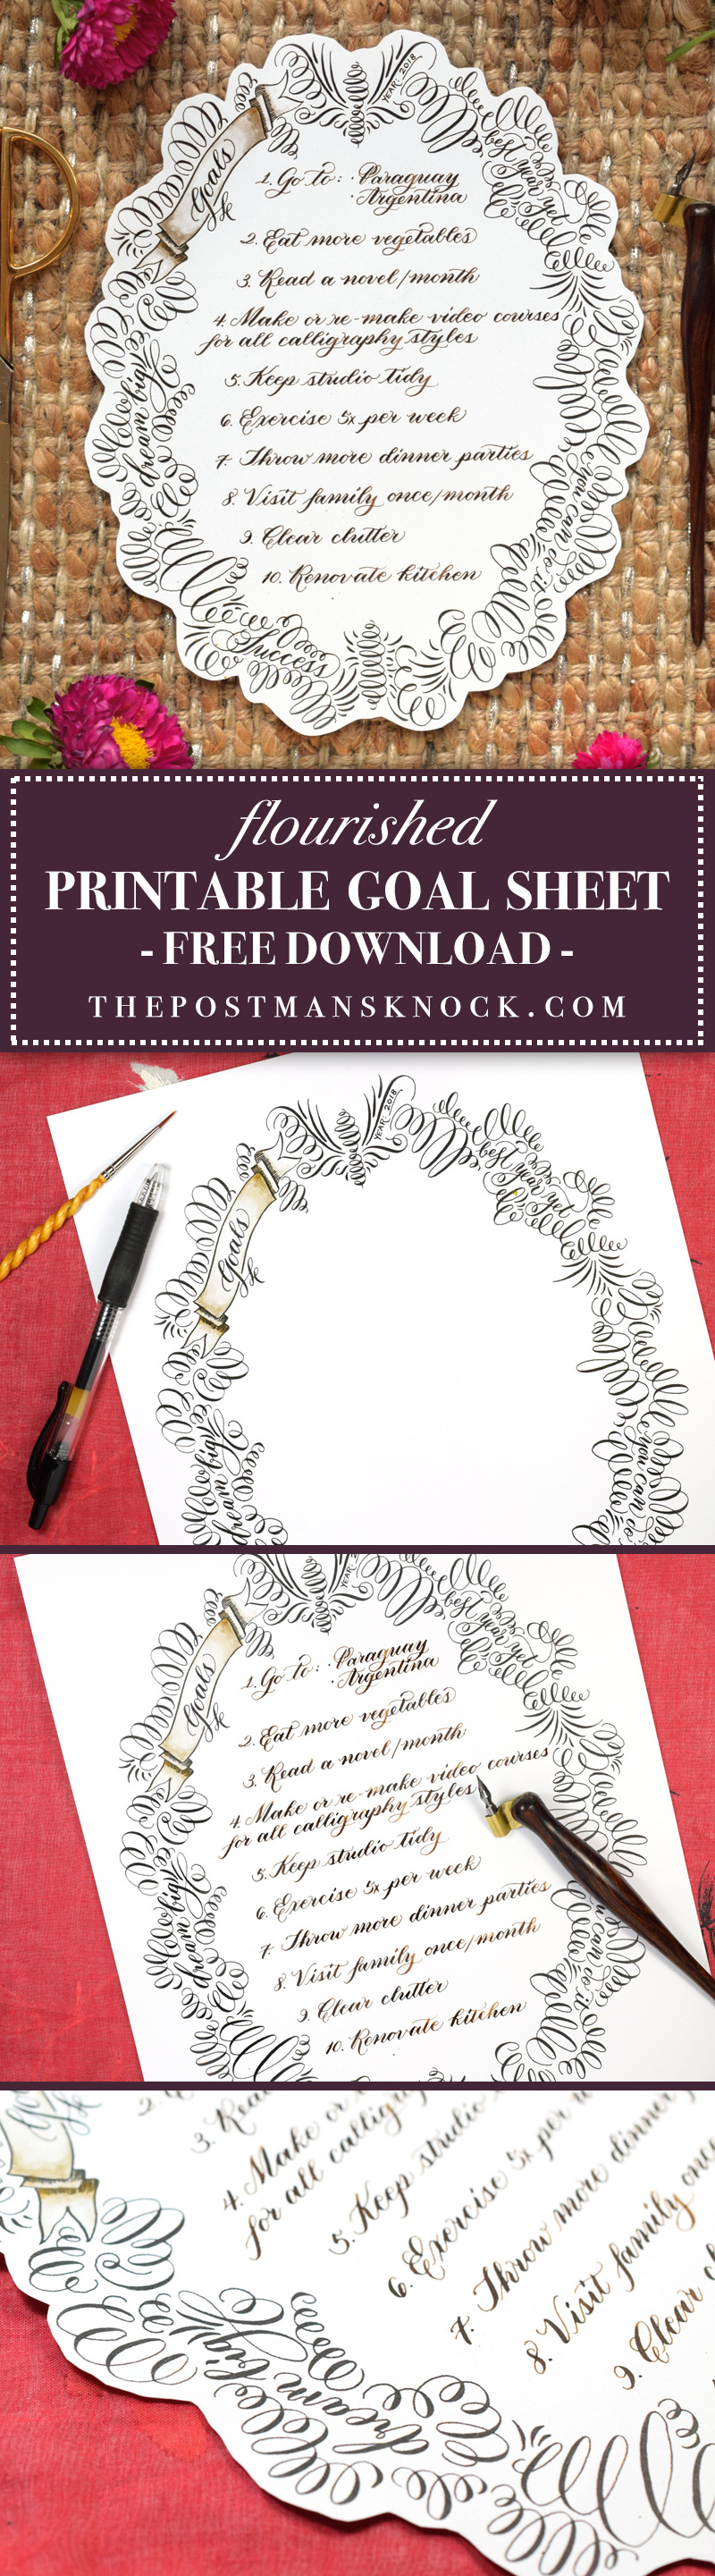 Free Flourished Printable Goal Sheet | The Postman's Knock